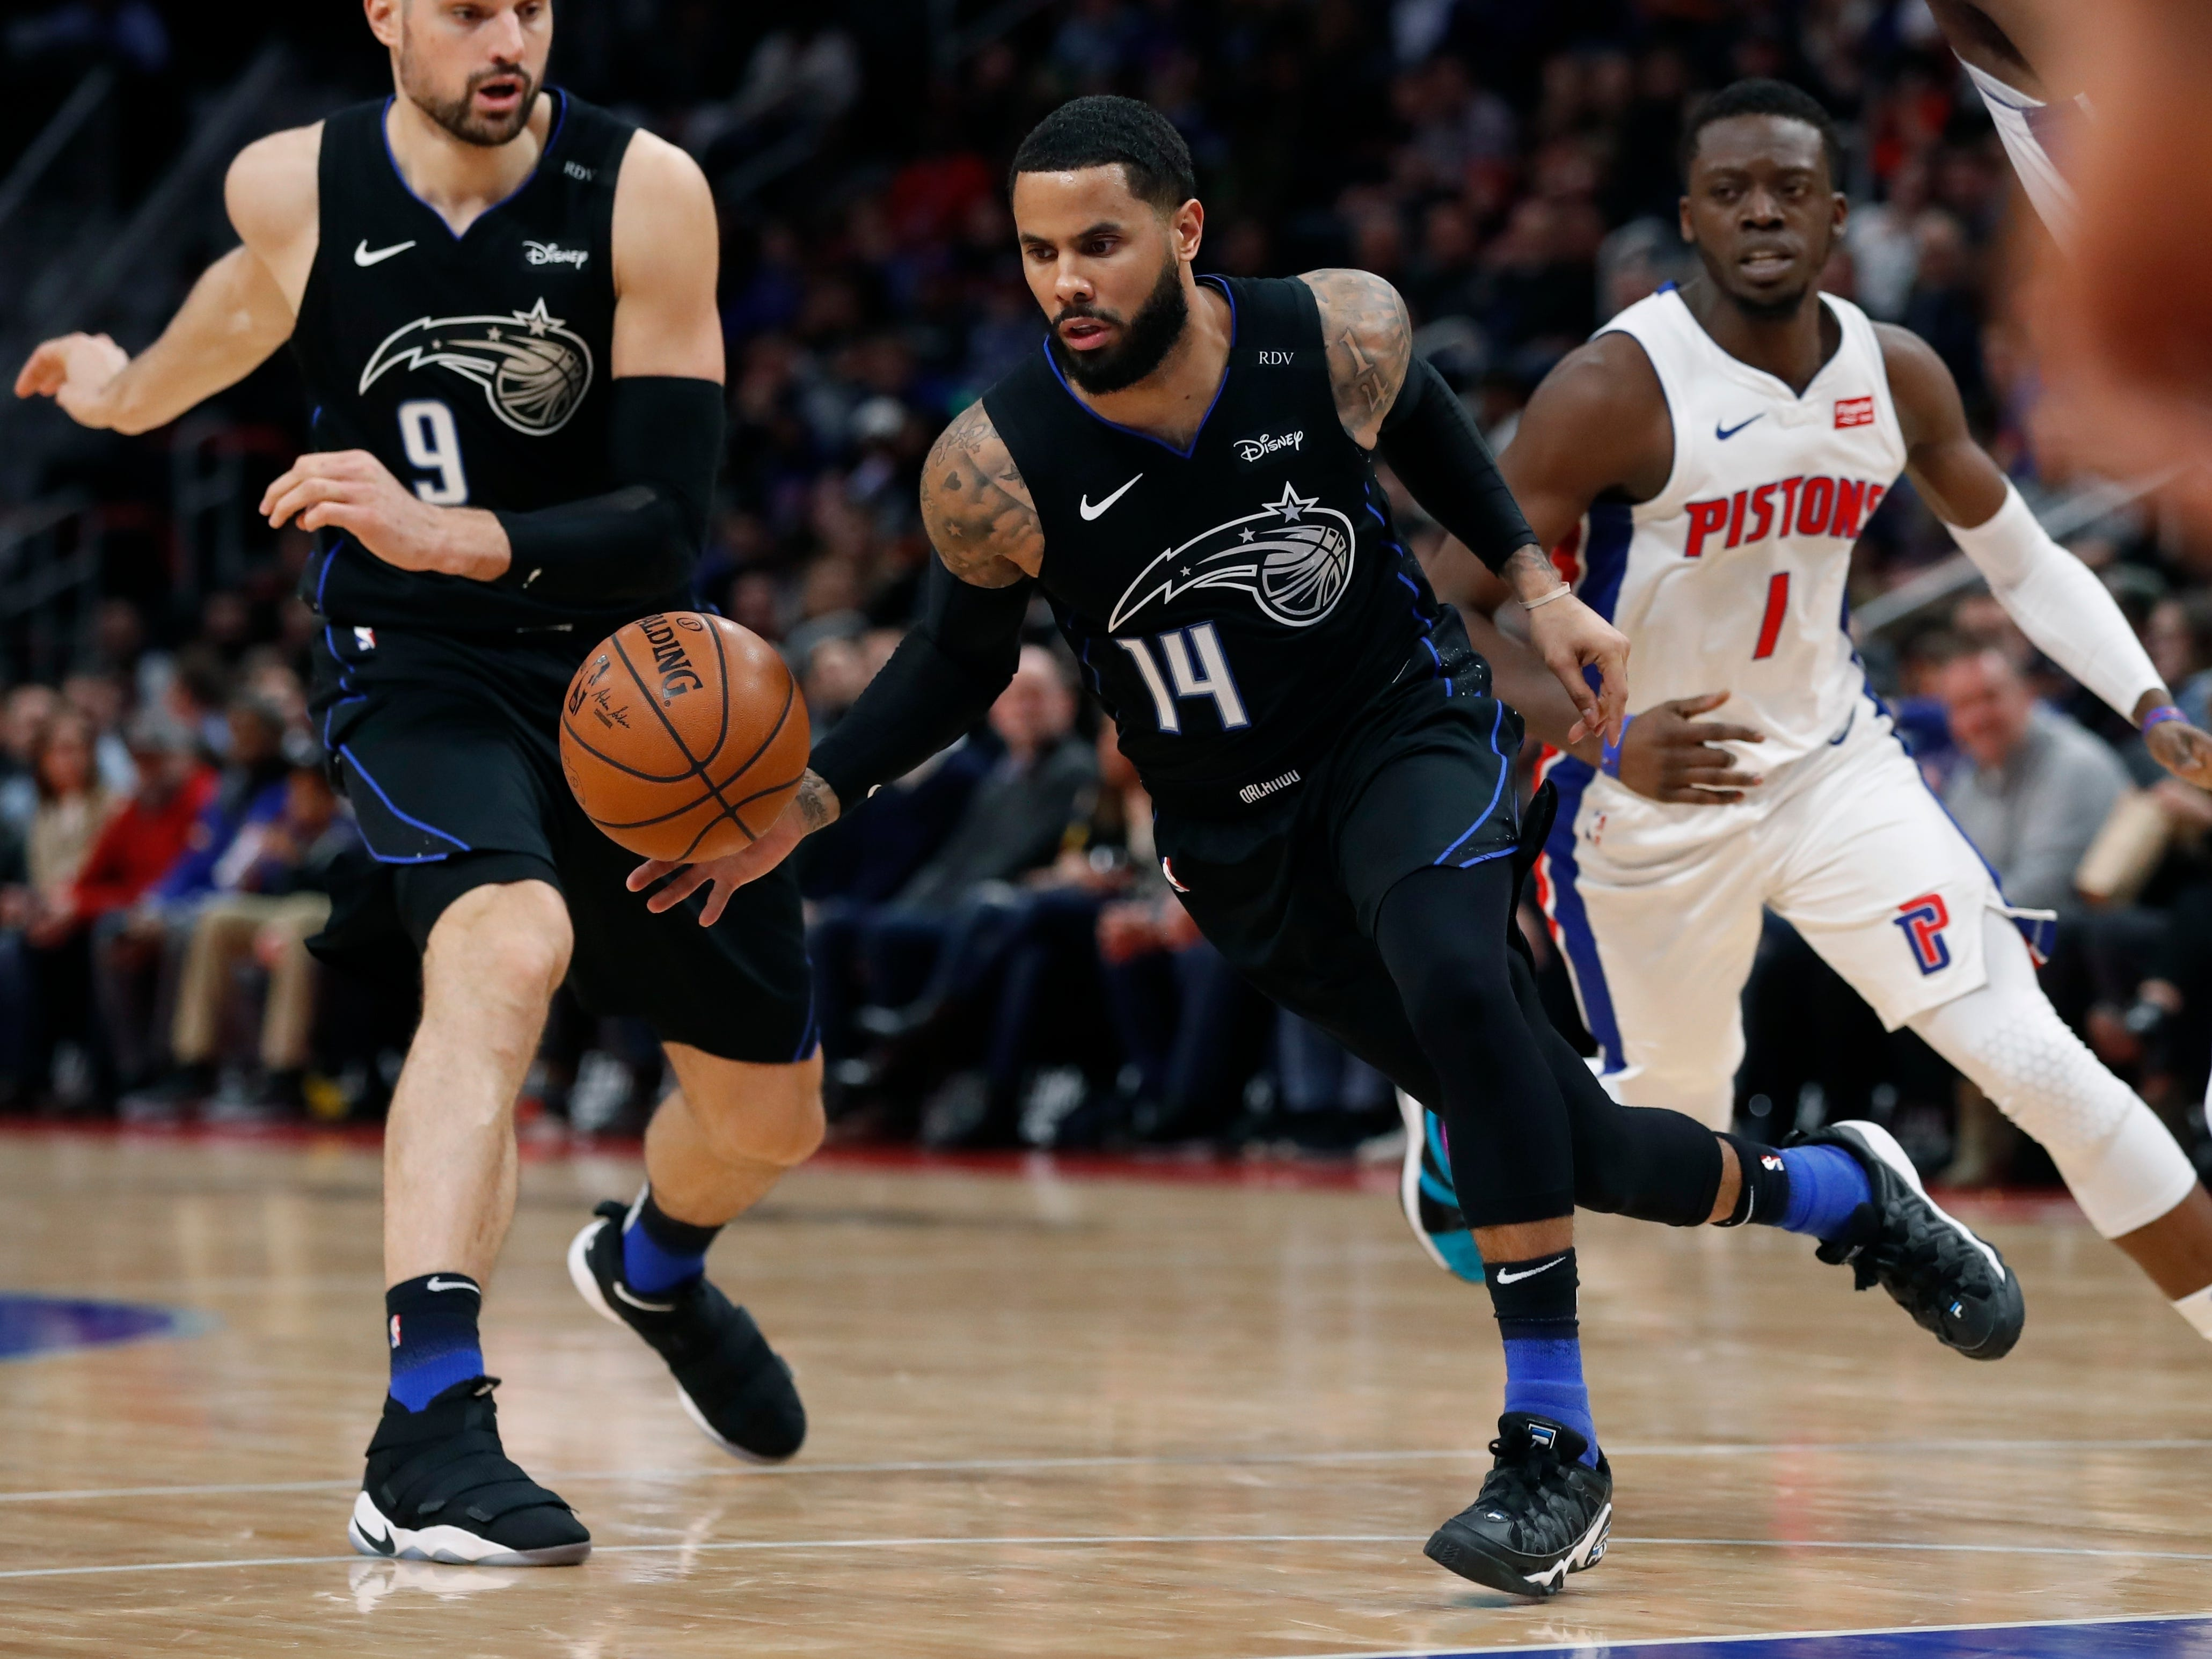 Orlando Magic guard D.J. Augustin (14) controls the ball during the second half.